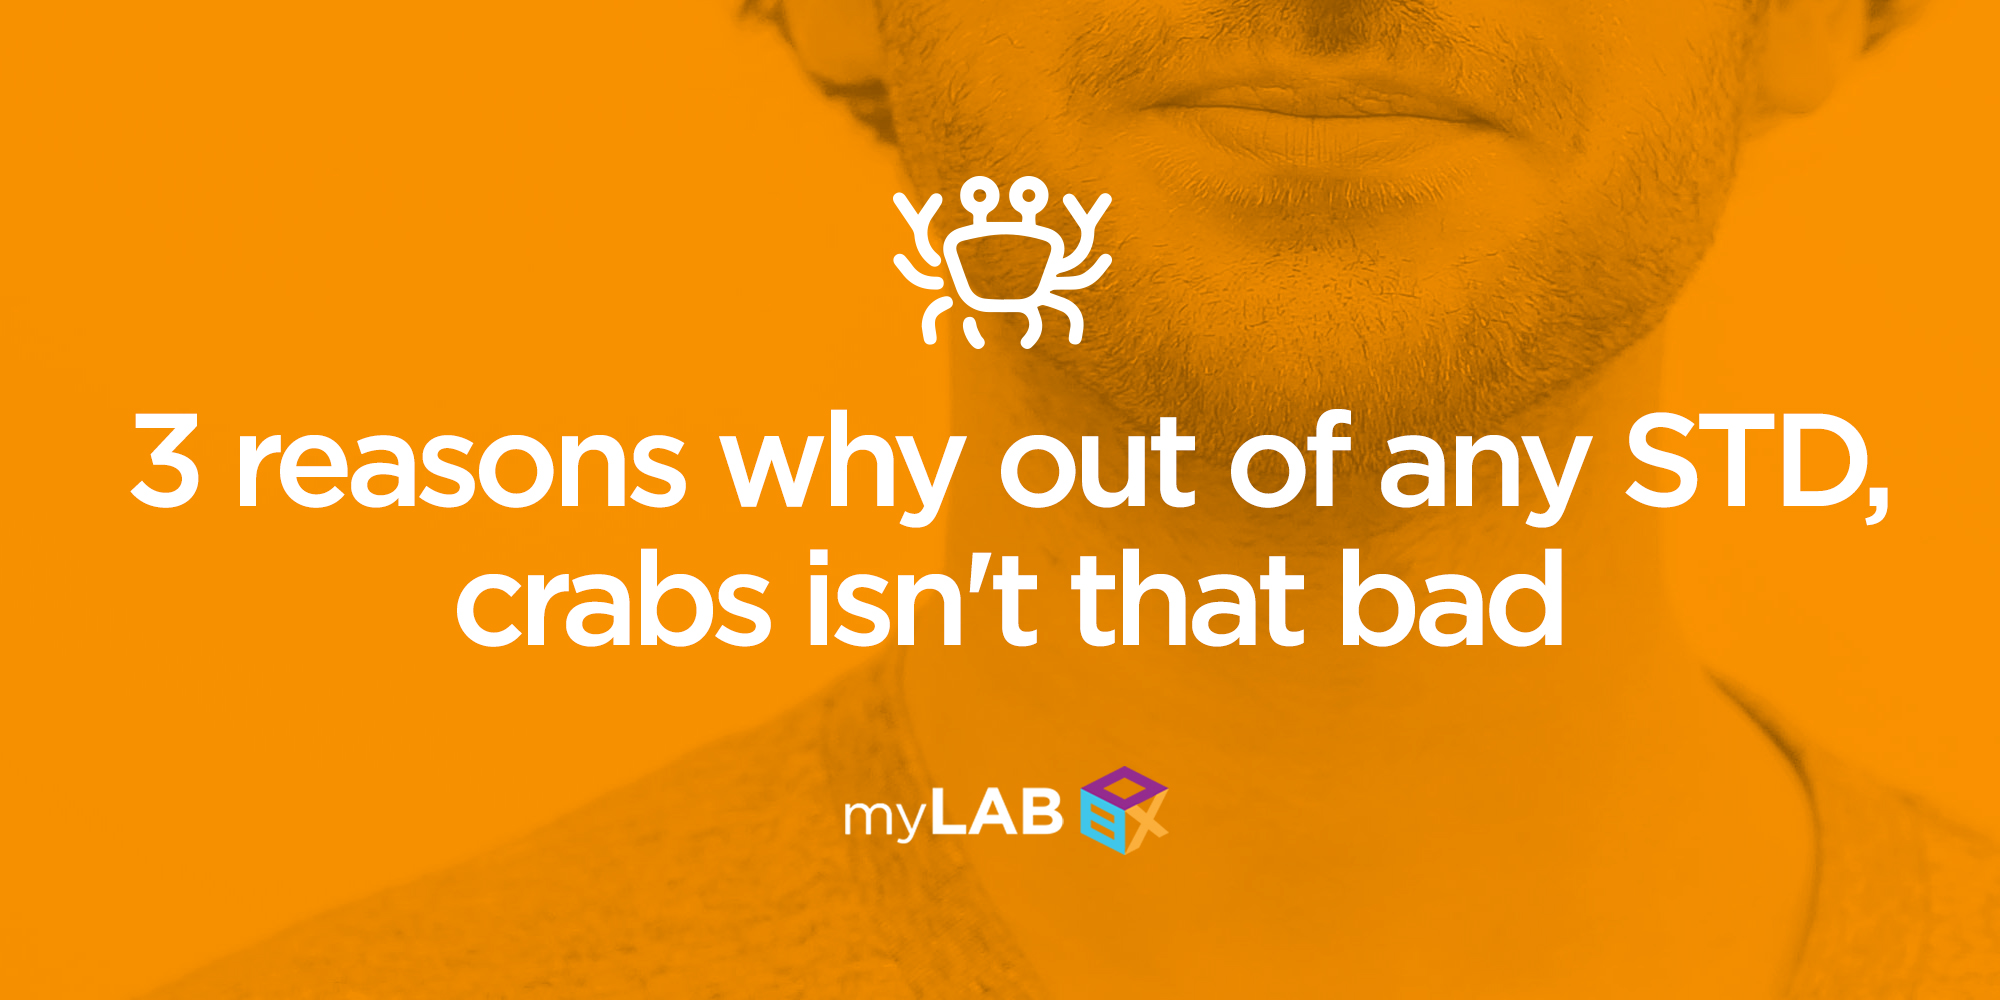 3 reasons why out of any STD, crabs isn't that bad